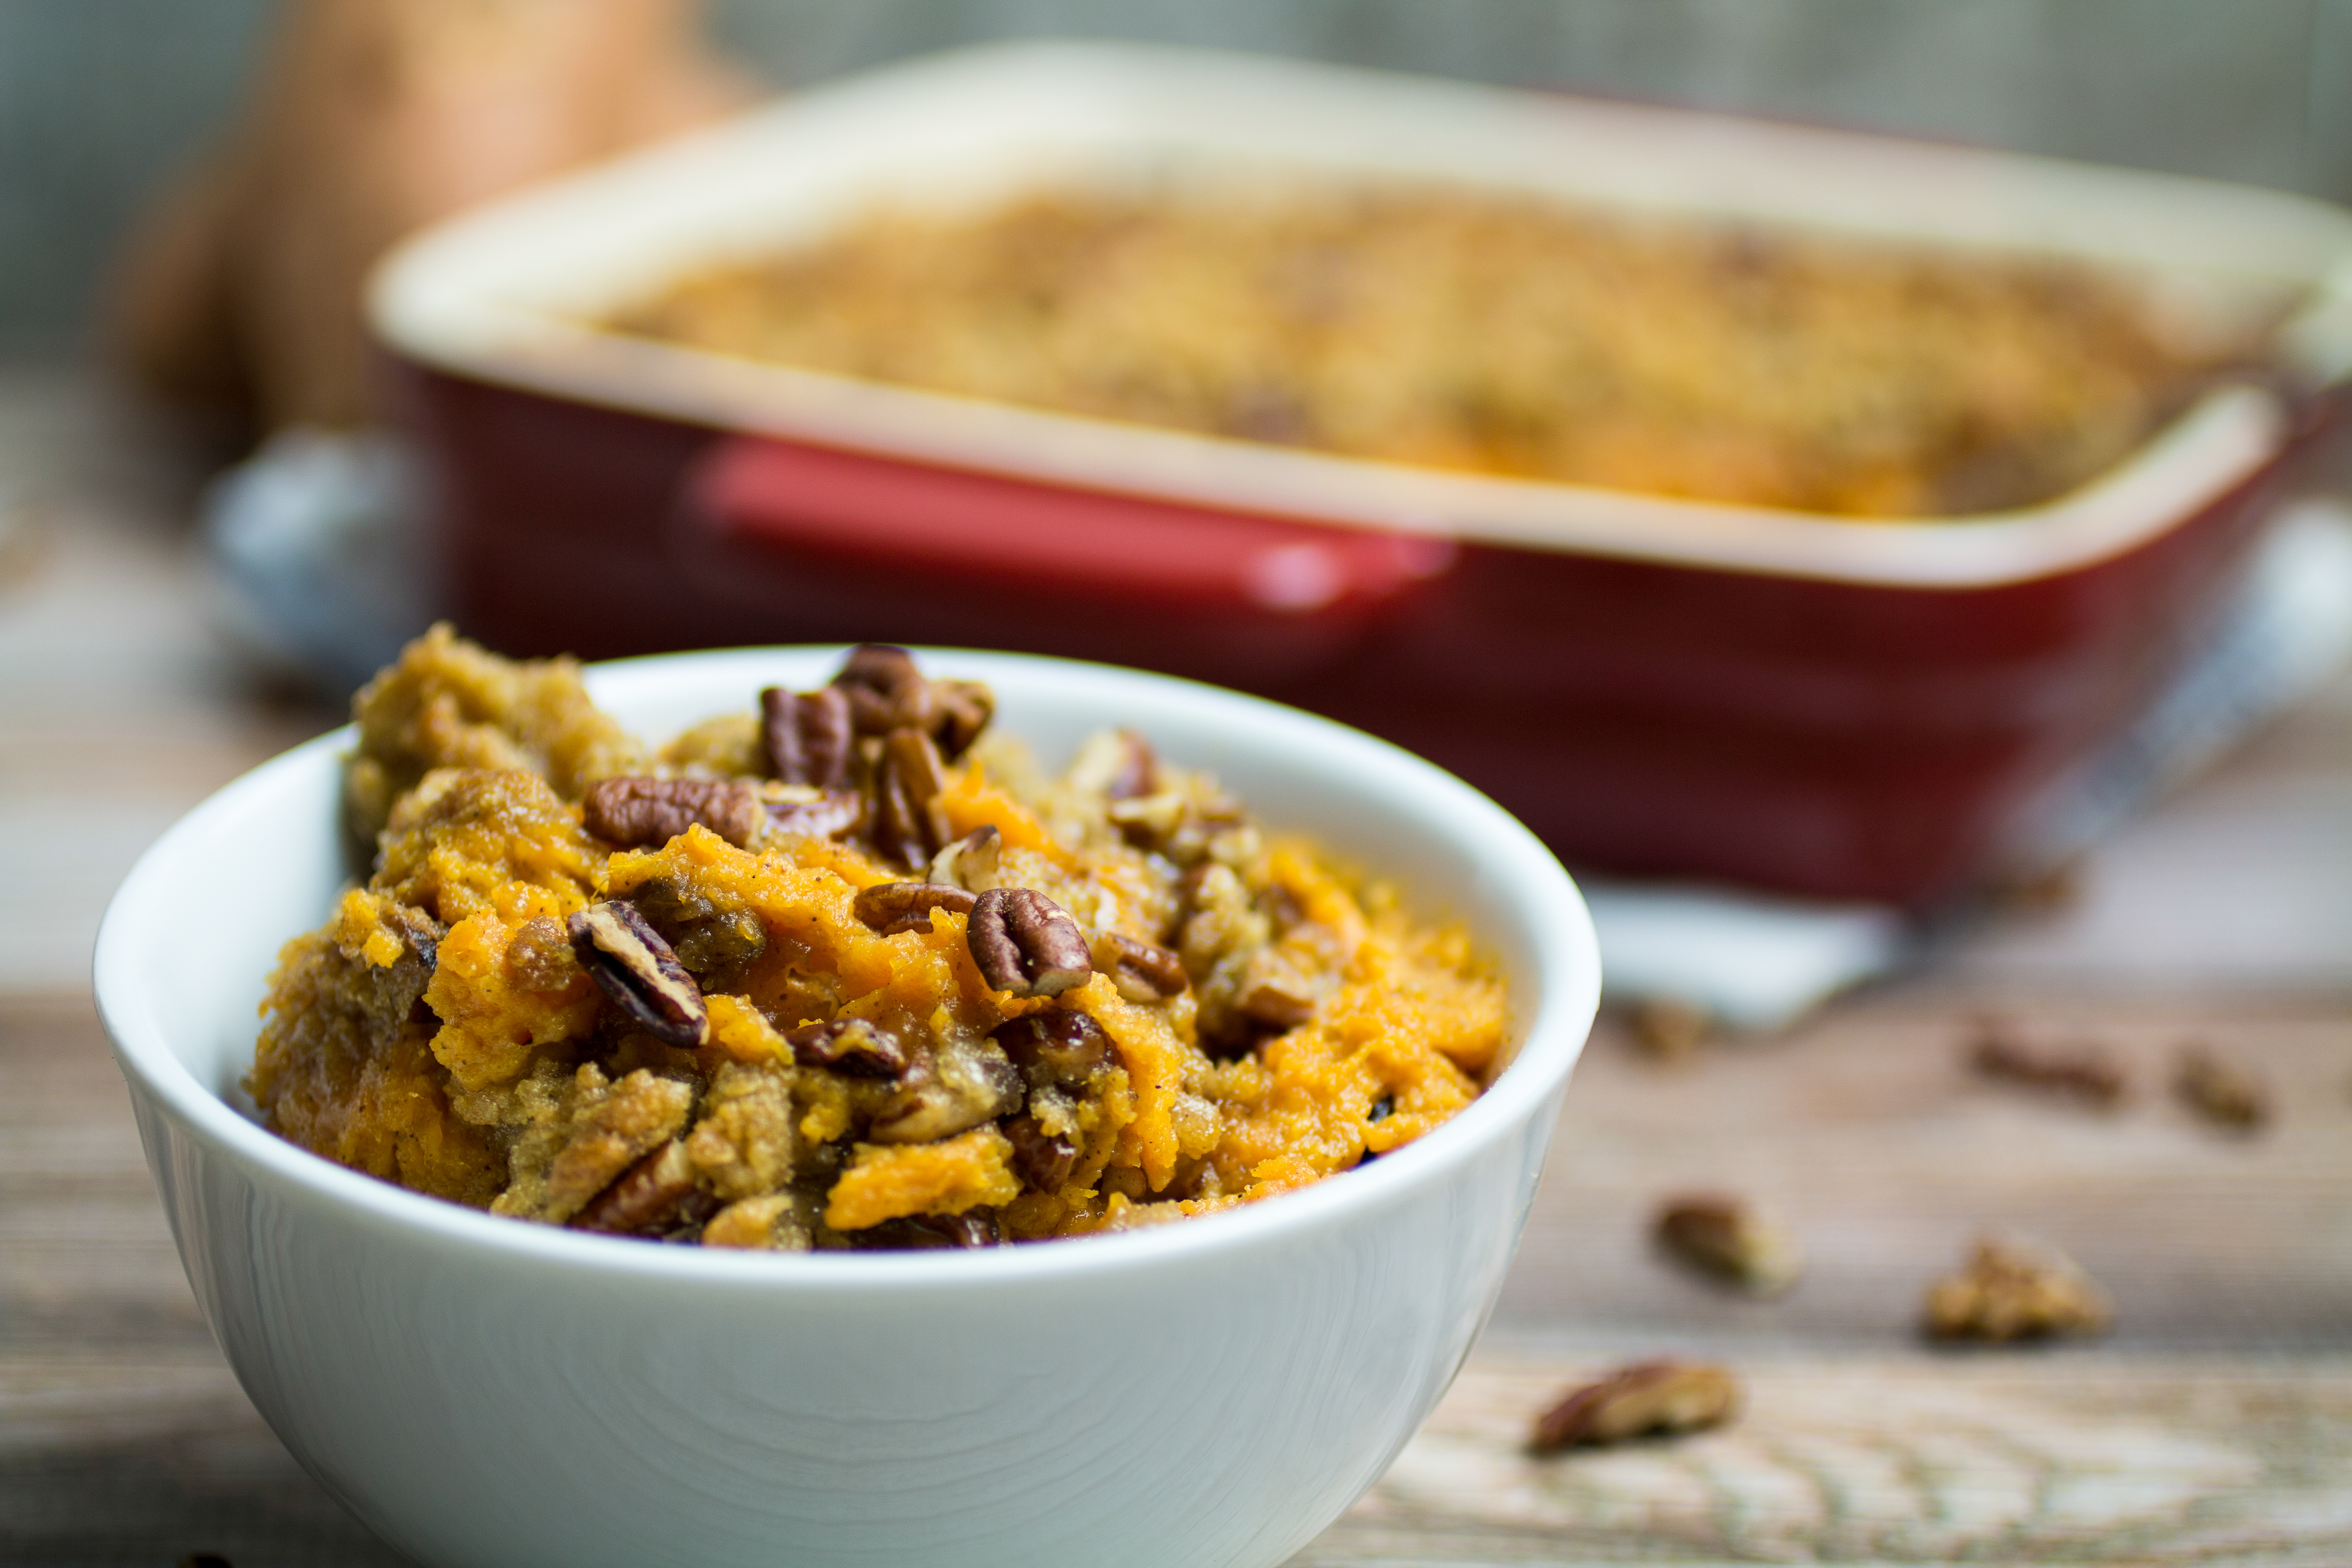 Easy Sweet Potato Casserole With Pecan Crumble Topping Dishing Delish